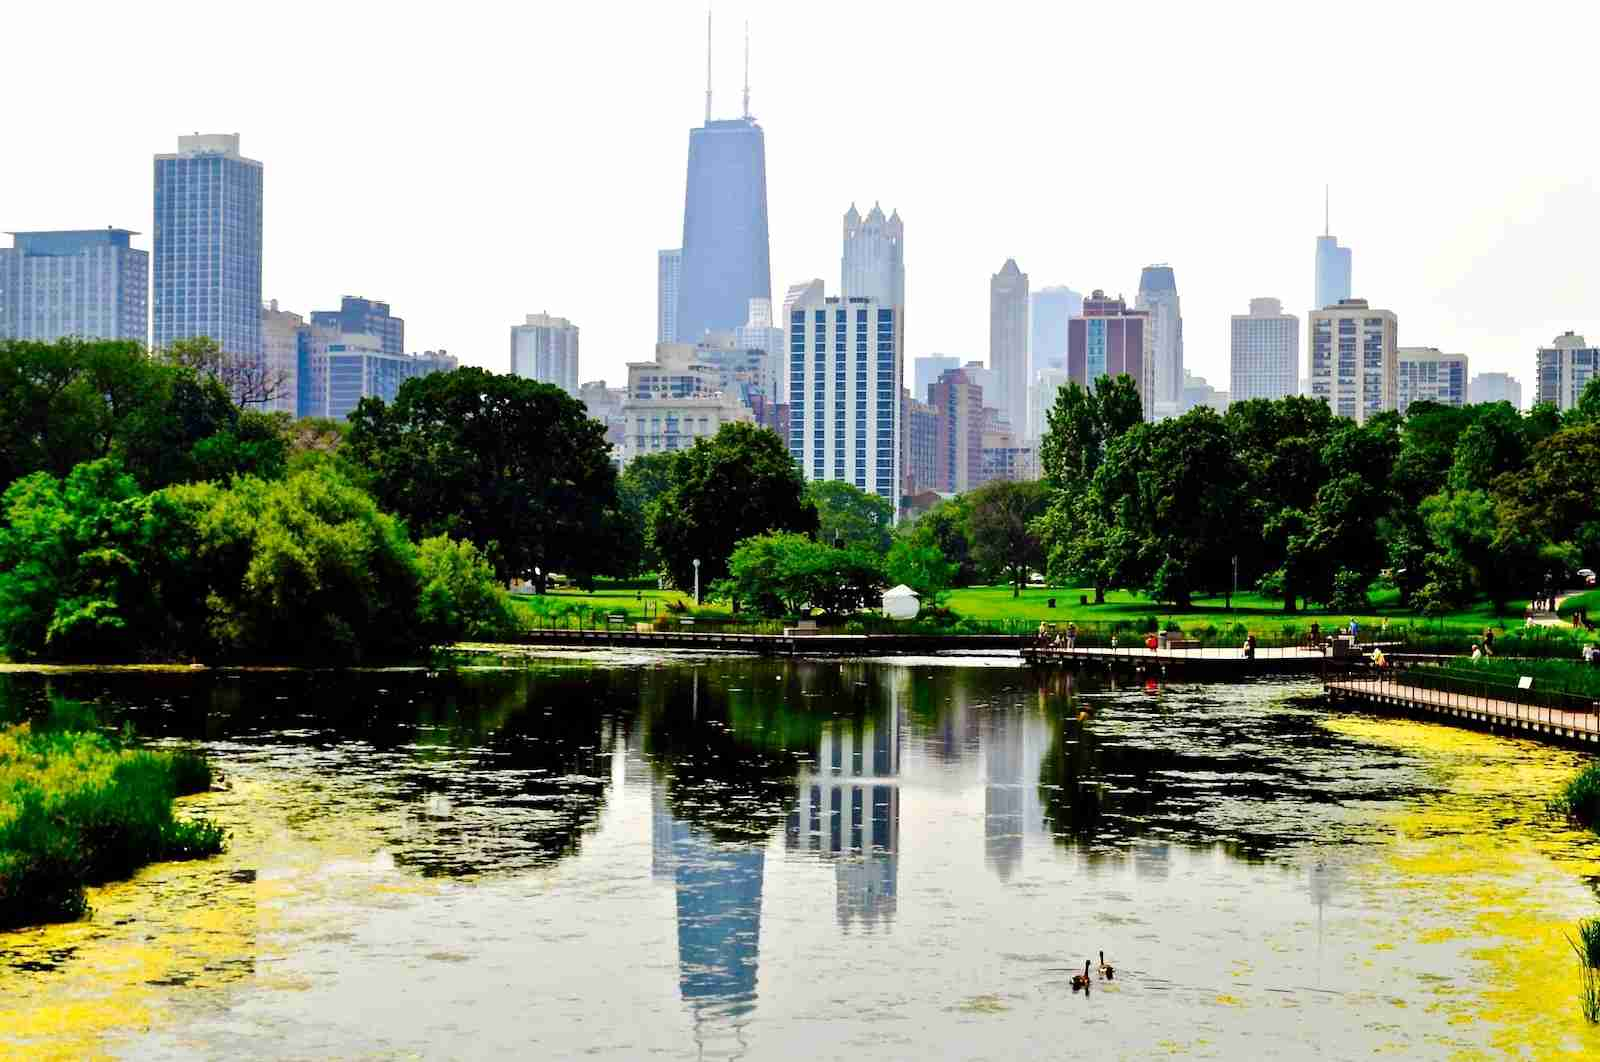 Reflection Of Downtown District In Lincoln Park Zoo Pond (Photo by Diarimar Rodriguez/EyeEm / Getty Images)